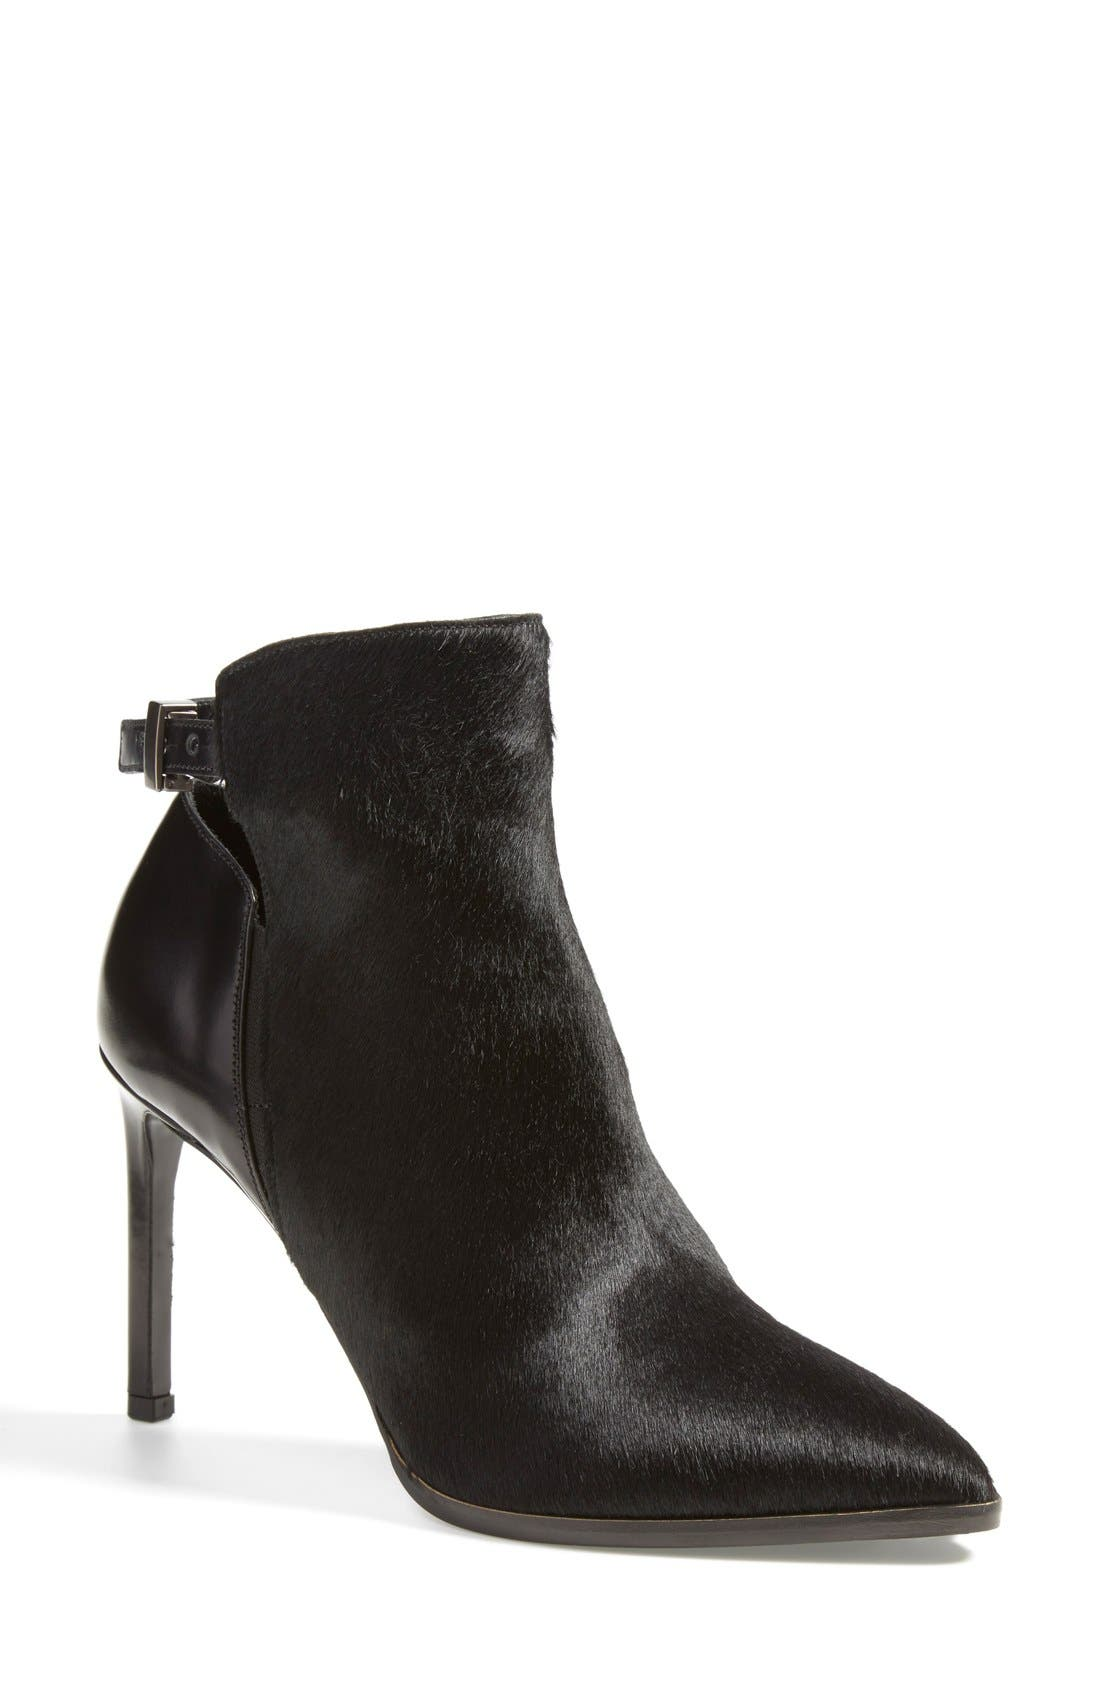 'Calla' Leather & Calf Hair Bootie,                         Main,                         color, Black